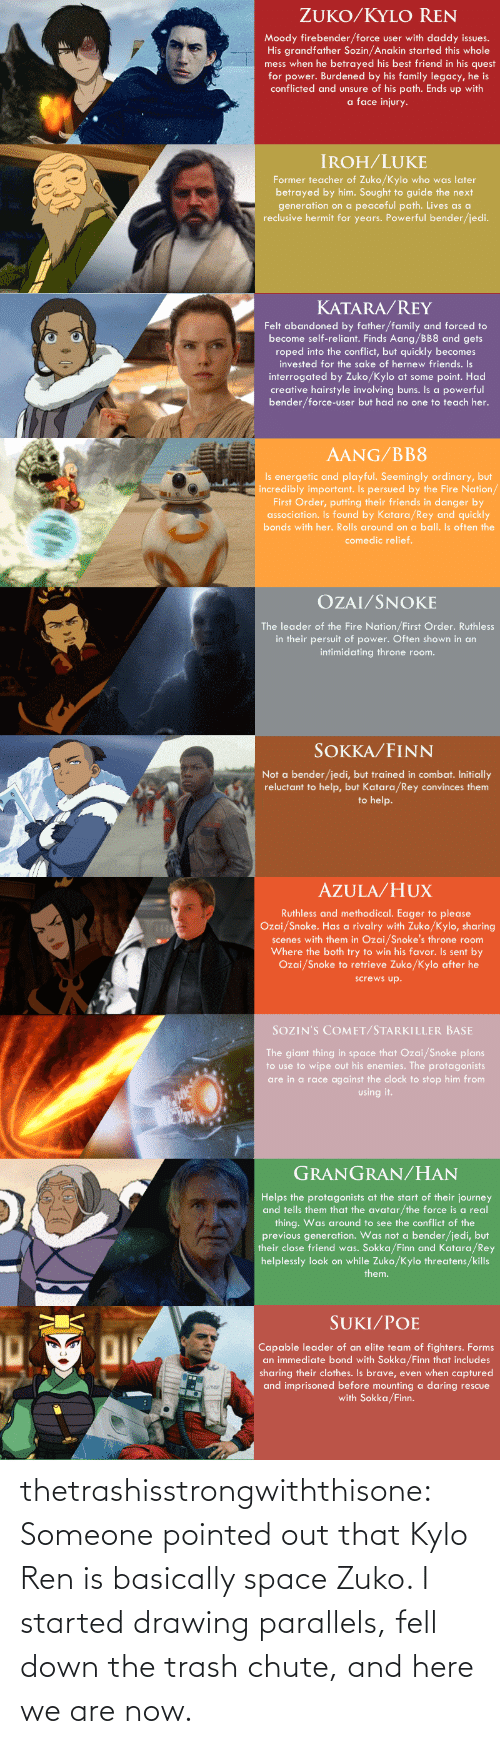 Sokka: ZUKO/KYLO REN  Moody firebender/force user with daddy issues.  His grandfather Sozin/Anakin started this whole  mess when he betrayed his best friend in his quest  for power. Burdened by his family legacy, he is  conflicted and unsure of his path. Ends up with  a face injury.  IROH/LUKE  Former teacher of Zuko/Kylo who was later  betrayed by him. Sought to guide the next  generation on a peaceful path. Lives as a  reclusive hermit for years. Powerful bender/jedi.   KATARA/REY  Felt abandoned by father/family and forced to  become self-reliant. Finds Aang/BB8 and gets  roped into the conflict, but quickly becomes  invested for the sake of hernew friends. Is  interrogated by Zuko/Kylo at some point. Had  creative hairstyle involving buns. Is a powerful  bender/force-user but had no one to teach her.  AANG/BB8  Is energetic and playful. Seemingly ordinary, but  incredibly important. Is persued by the Fire Nation/  First Order, putting their friends in danger by  association. Is found by Katara/Rey and quickly  bonds with her. Rolls around on a ball. Is often the  comedic relief.   OZAI/SNOKE  The leader of the Fire Nation/First Order. Ruthless  in their persuit of power. Often shown in an  intimidating throne room.  SOKKA/FINN  Not a bender/jedi, but trained in combat. Initially  reluctant to help, but Katara/Rey convinces them  to help.   AZULA/HUX  Ruthless and methodical. Eager to please  Ozai/Snoke. Has a rivalry with Zuko/Kylo, sharing  scenes with them in Ozai/Snoke's throne room  Where the both try to win his favor. Is sent by  Ozai/Snoke to retrieve Zuko/Kylo after he  KAN  LEGO  screws up.  SOZIN'S COMET/STARKILLER BASE  The giant thing in space that Ozai/Snoke plans  to use to wipe out his enemies. The protagonists  are in a race against the clock to stop him from  using it.   GRANGRAN/HAN  Helps the protagonists at the start of their journey  and tells them that the avatar/the force is a real  thing. Was around to see the conflict of the  previous generation. Was not a bender/jedi, but  | their close friend was. Sokka/Finn and Katara/Rey  helplessly look on while Zuko/Kylo threatens/kills  them.  SUKI/POE  10  Capable leader of an elite team of fighters. Forms  an immediate bond with Sokka/Finn that includes  sharing their clothes. Is brave, even when captured  and imprisoned before mounting a daring rescue  with Sokka/Finn. thetrashisstrongwiththisone:  Someone pointed out that Kylo Ren is basically space Zuko. I started drawing parallels, fell down the trash chute, and here we are now.